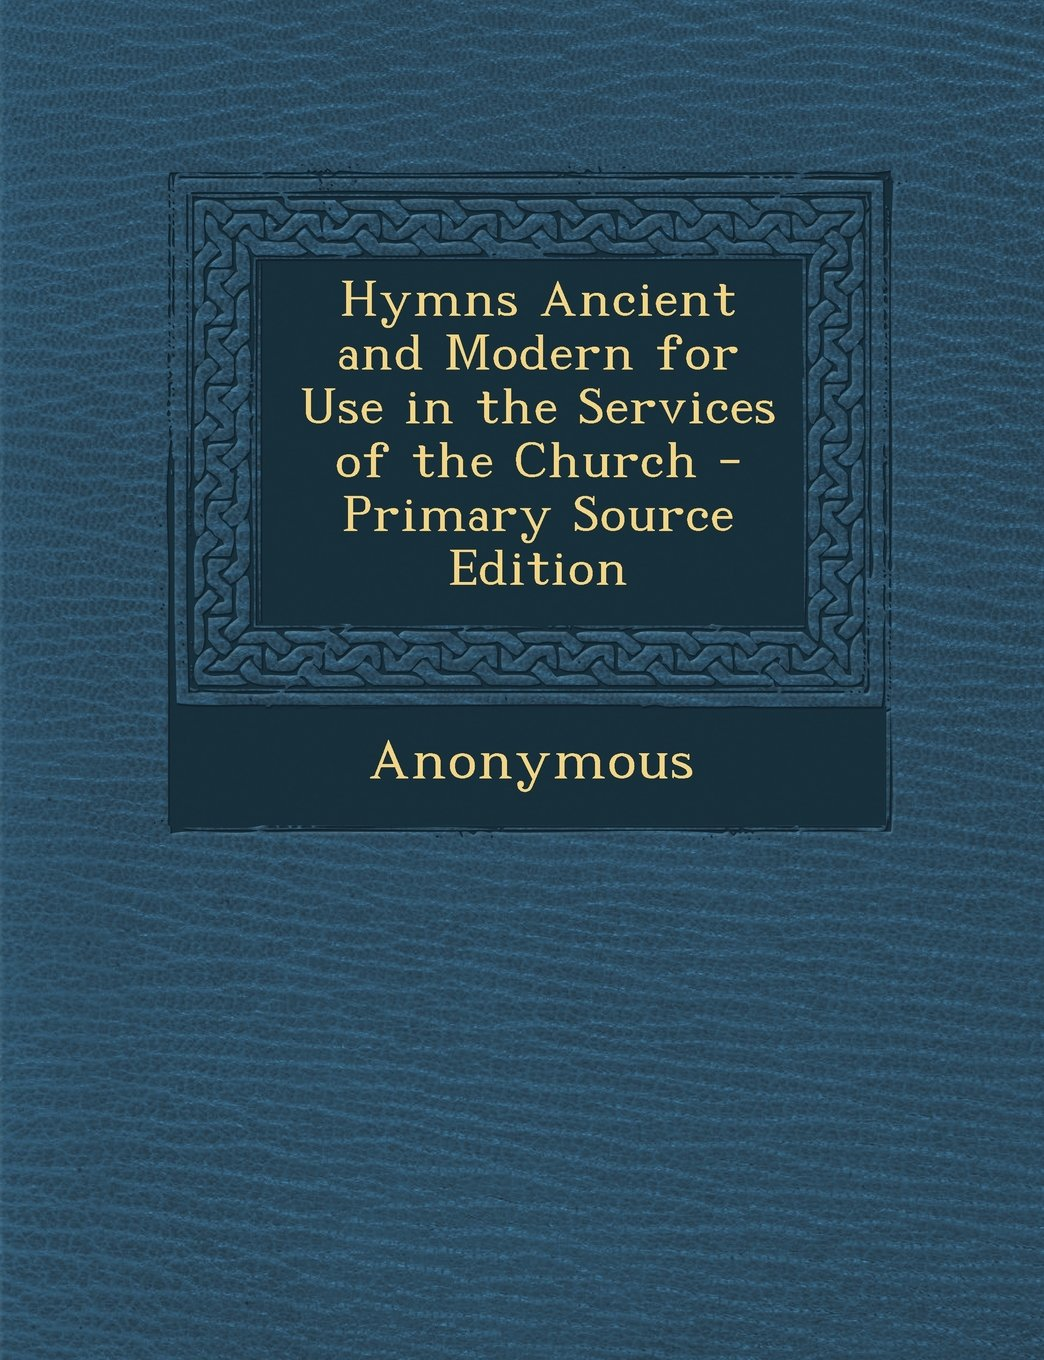 Hymns Ancient and Modern for Use in the Services of the Church - Primary  Source Edition: Anonymous: 9781287715542: Amazon.com: Books